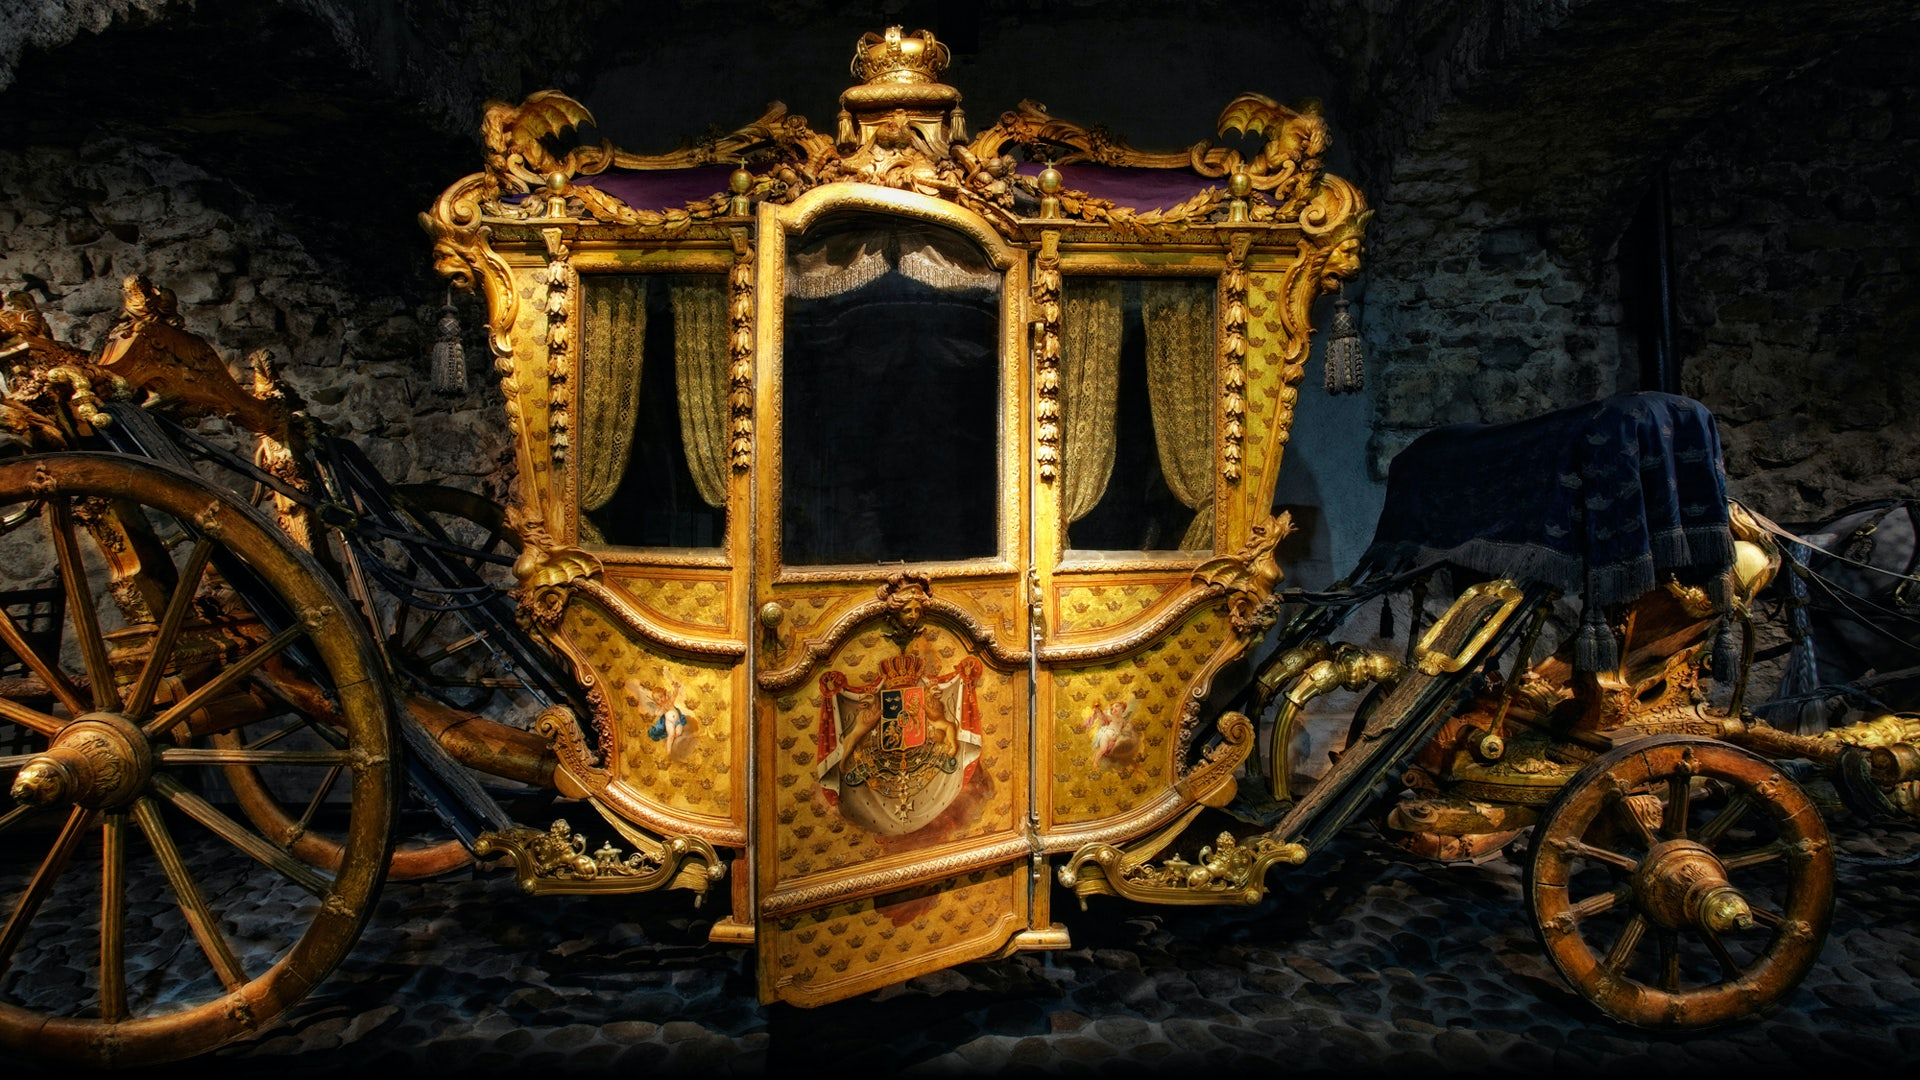 royal carriage in Livrustkammaren museum